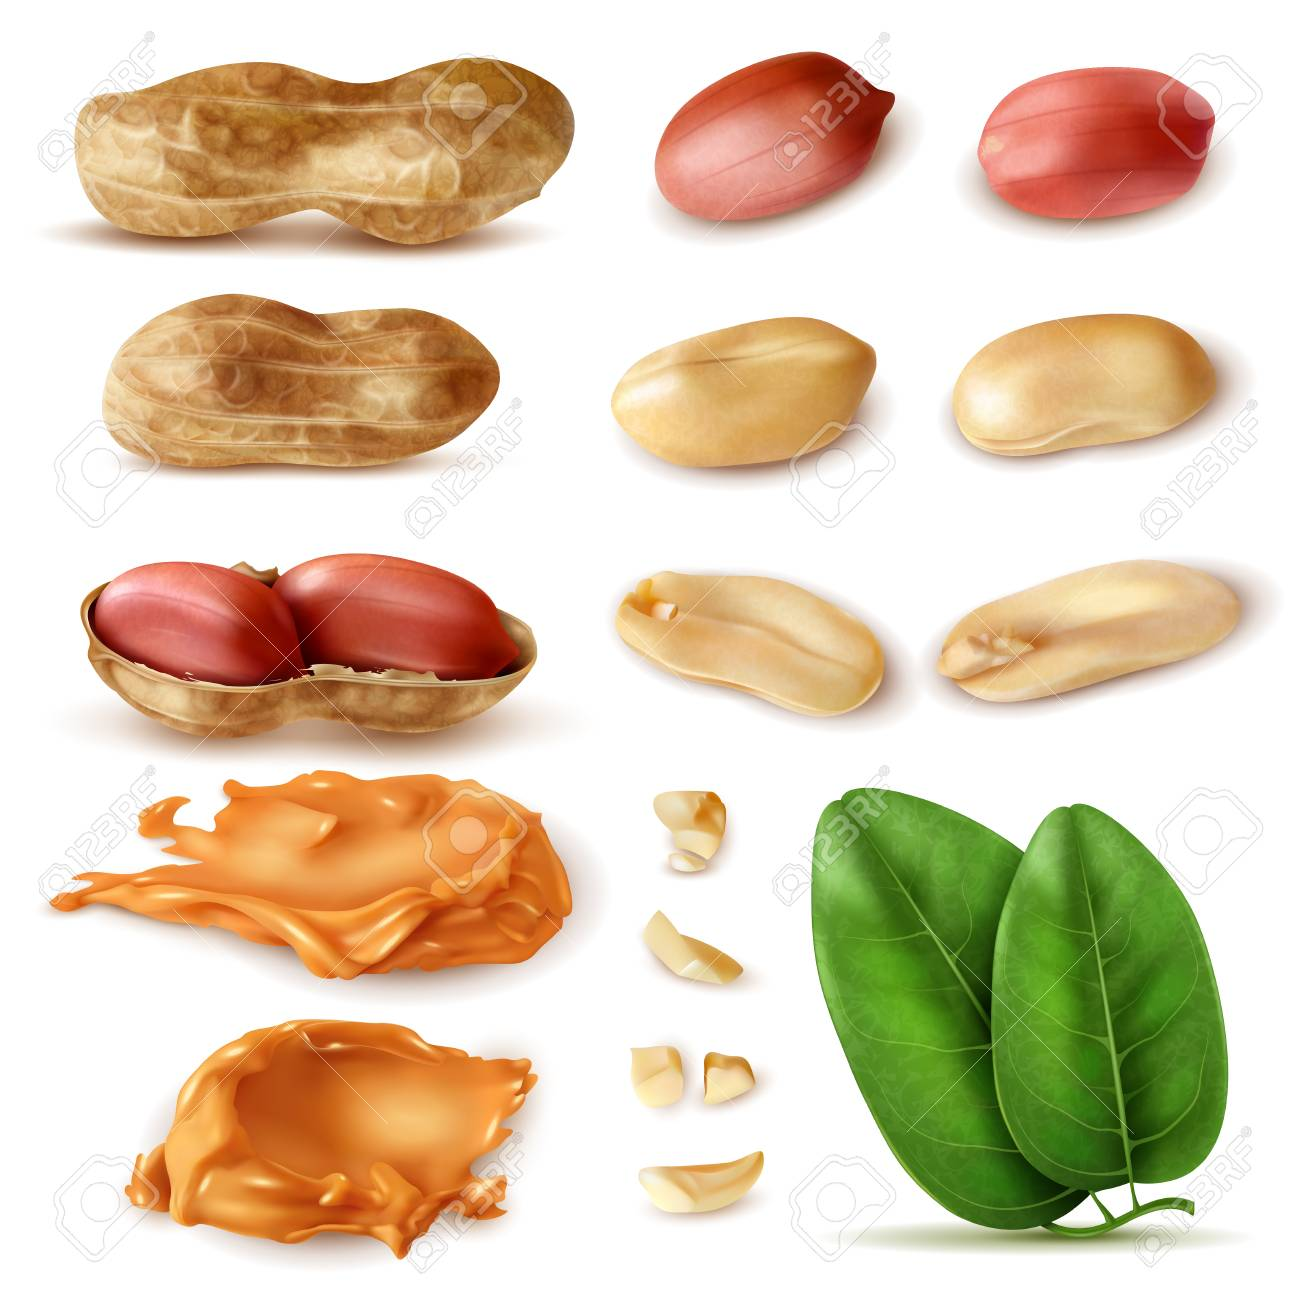 Realistic peanut set of isolated images of beans in shell with green leaves and peanut butter vector illustration - 112468116